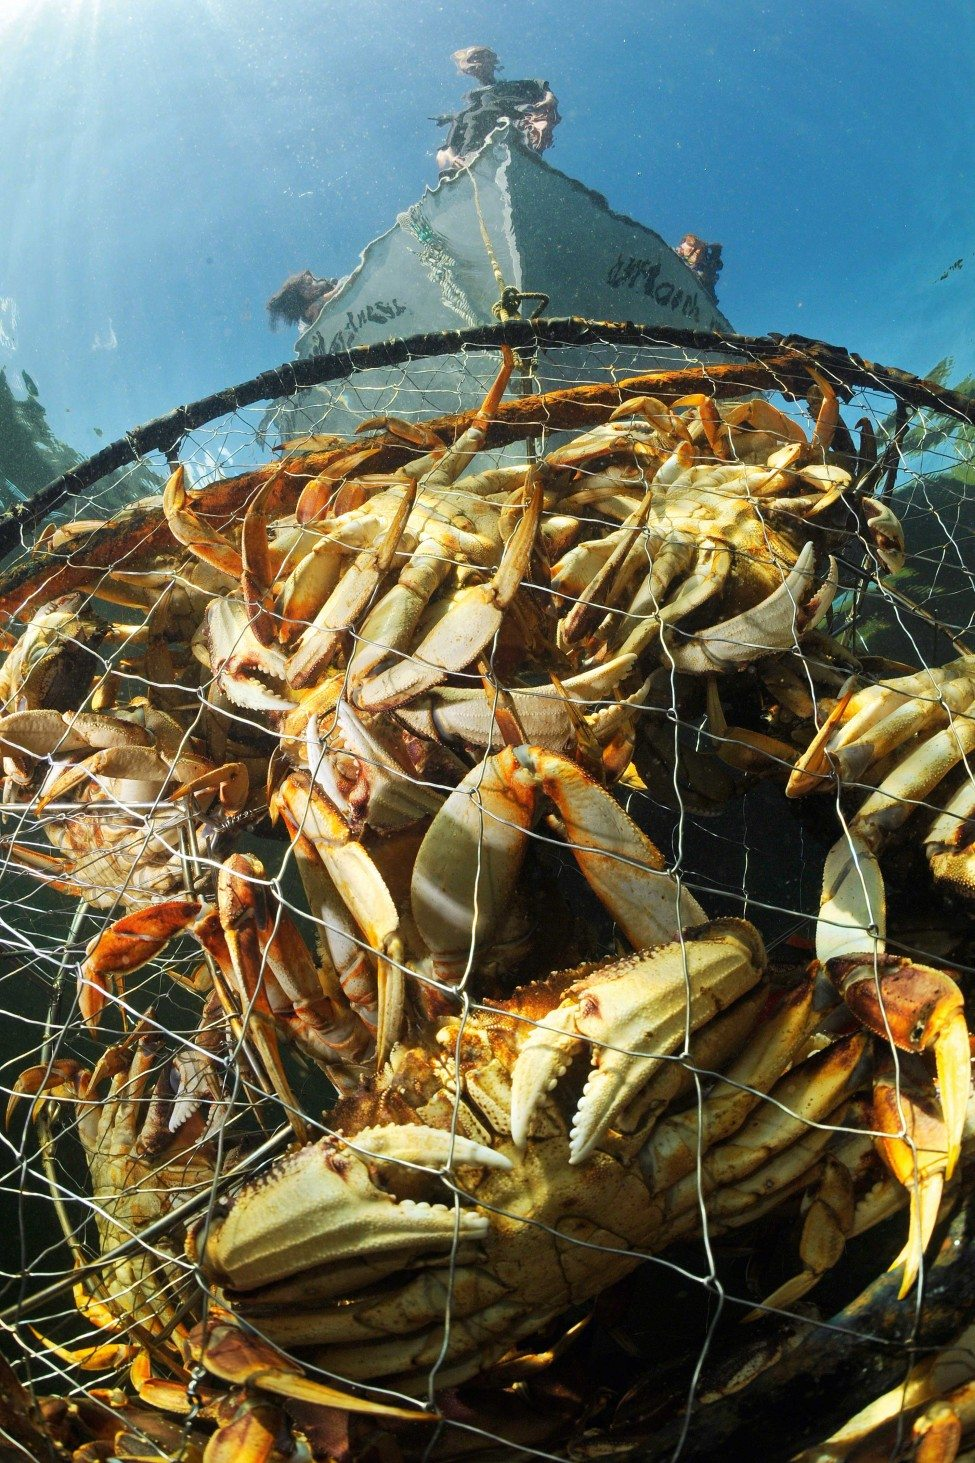 Considered to be the world's most delicious crustacean, the Dungeness crab is an important food source for the Gitga'at First Nation. Schoolteacher and Hartley Bay councillor Cameron Hill pulls up one of his traps filled with crabs.